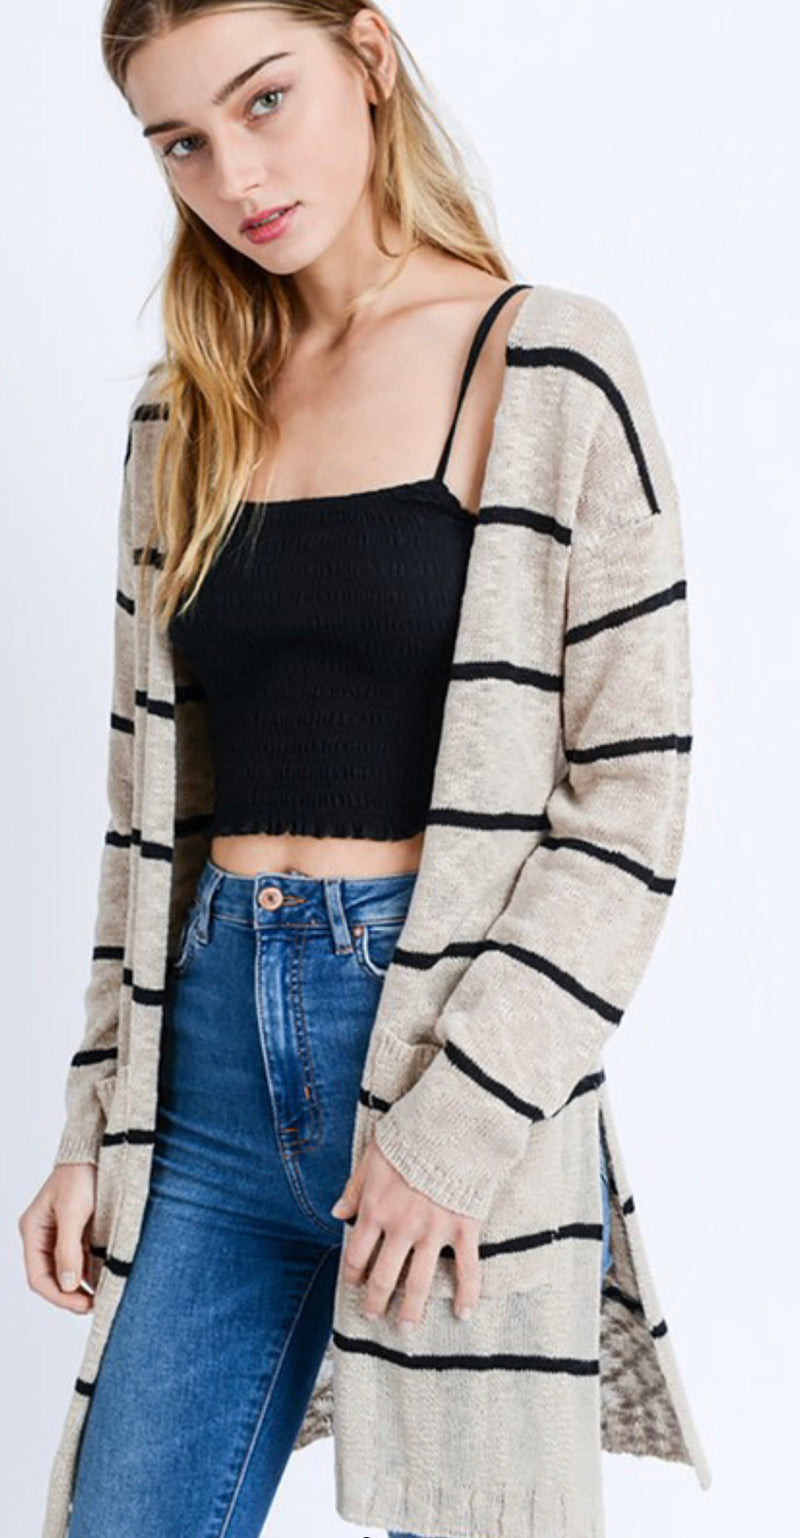 Black & Tan Striped Cardigan